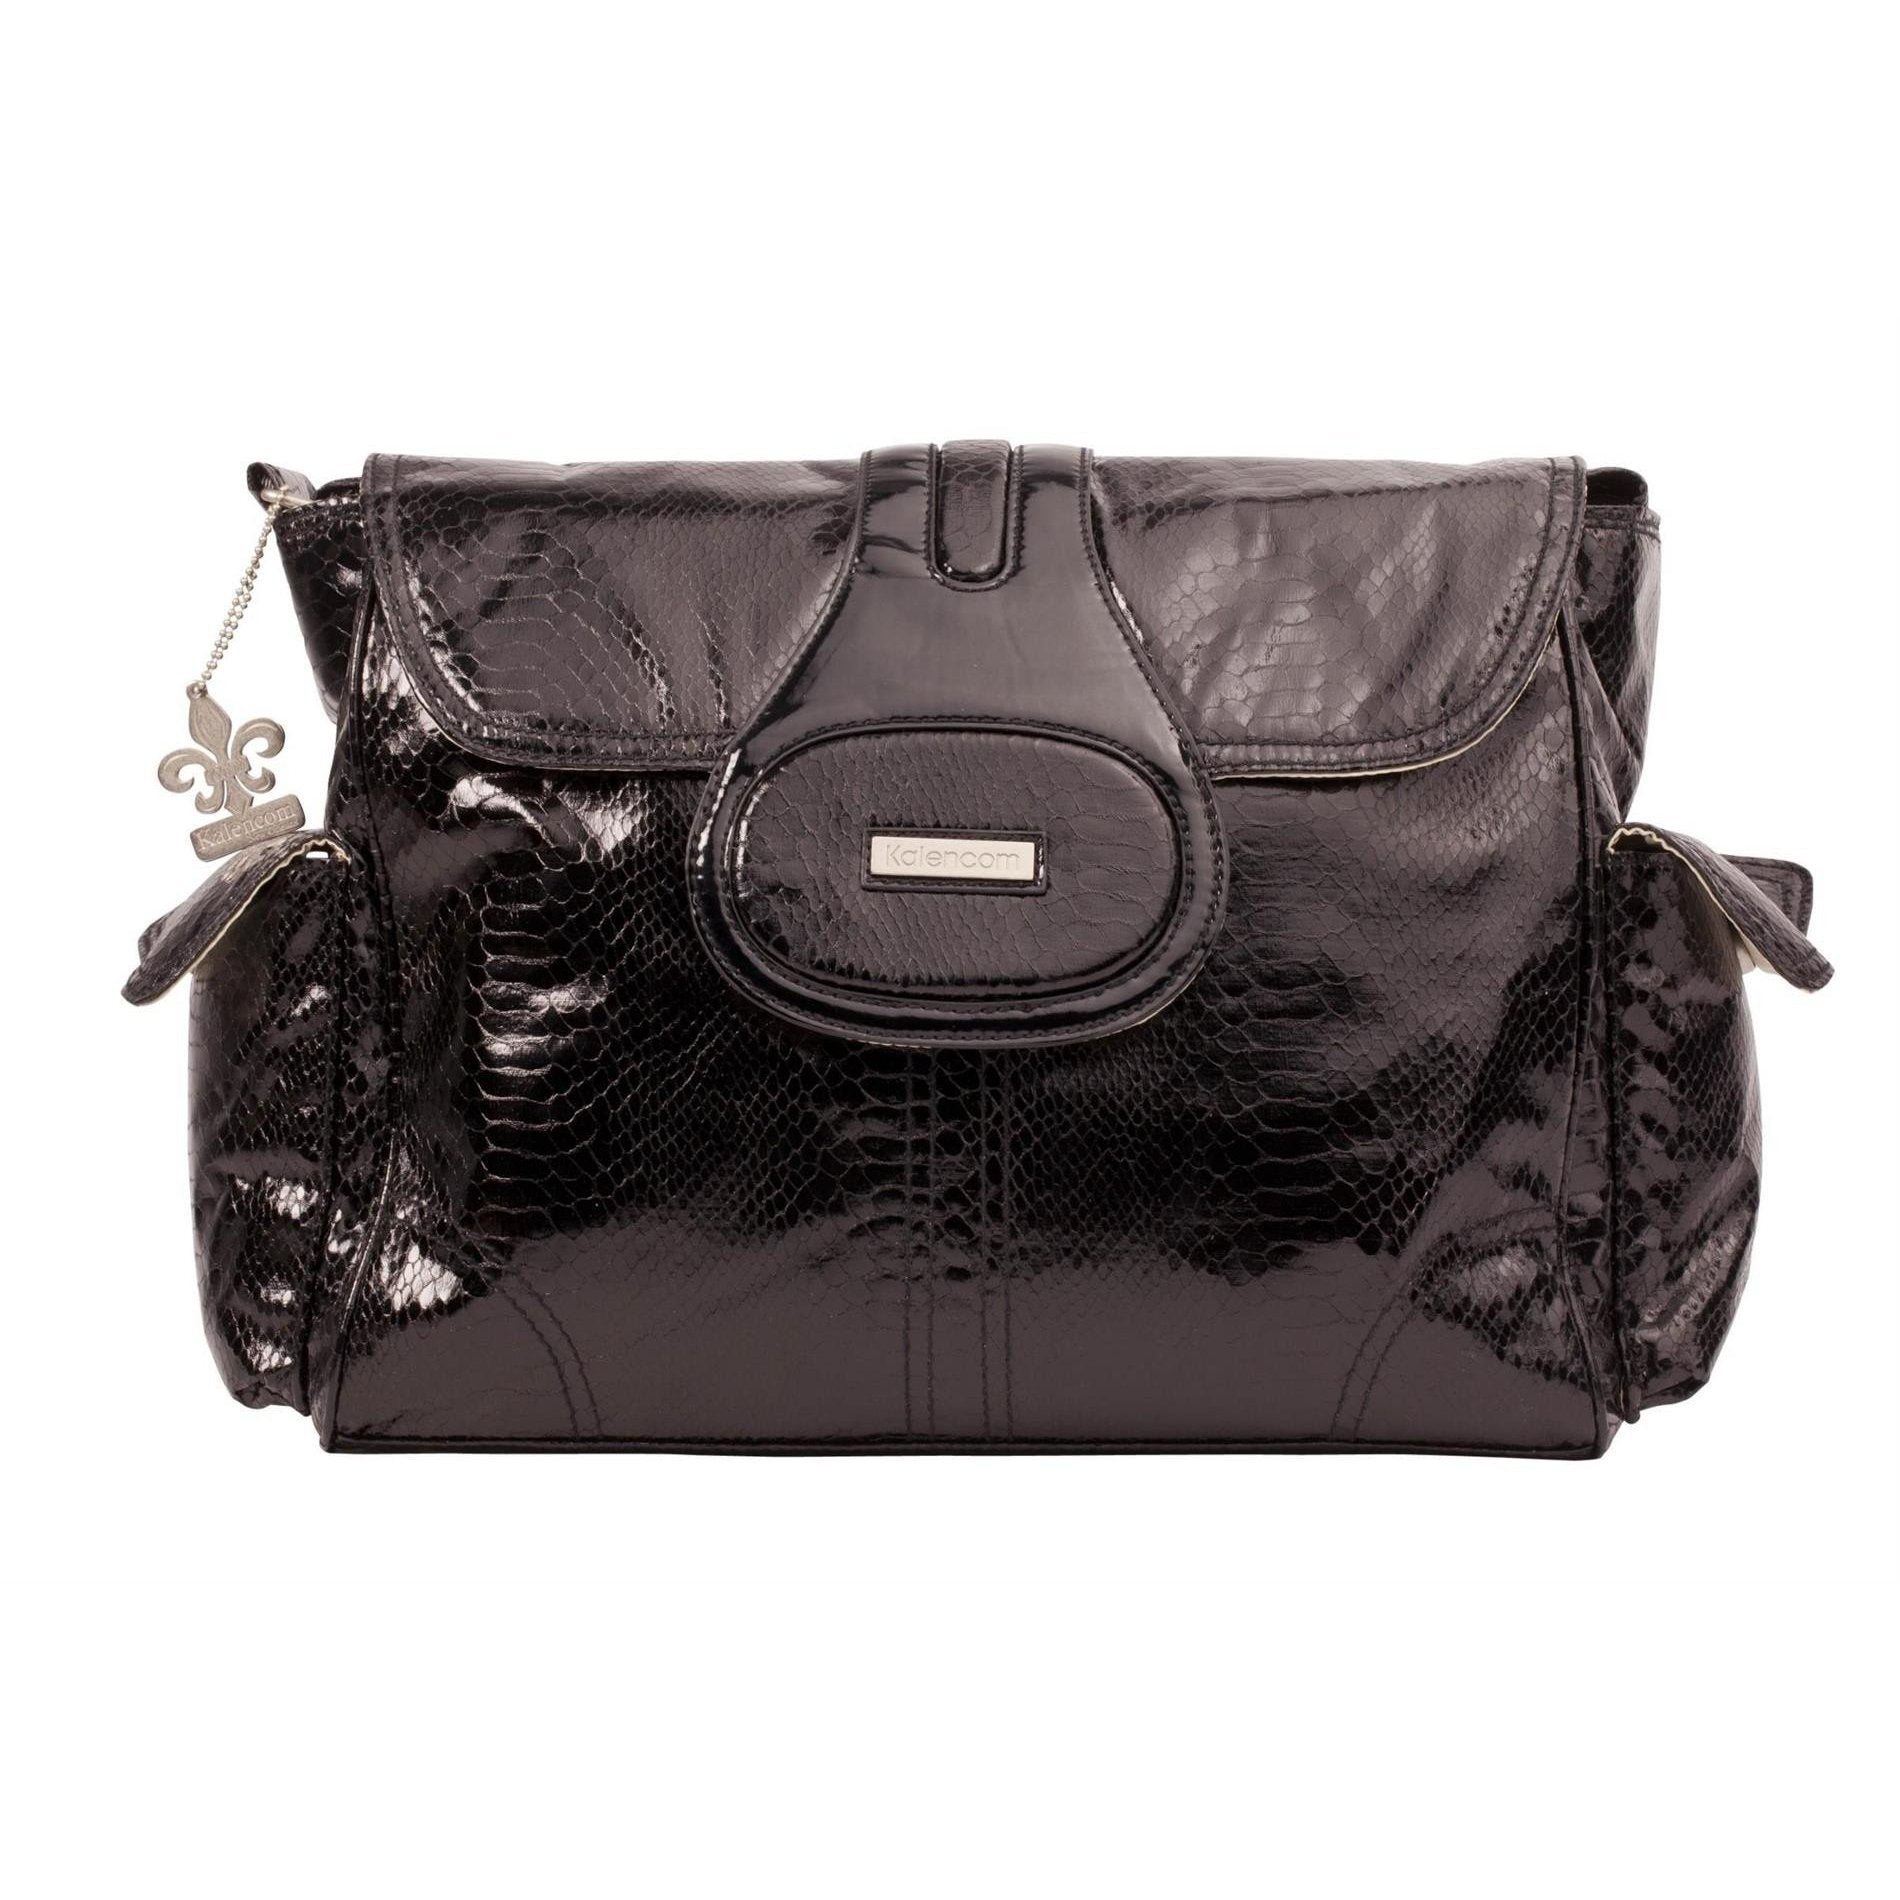 Cosmopolitan Black Elite Diaper Bag | Style 2975 - Kalencom-Diaper Bags-Default-Jack and Jill Boutique